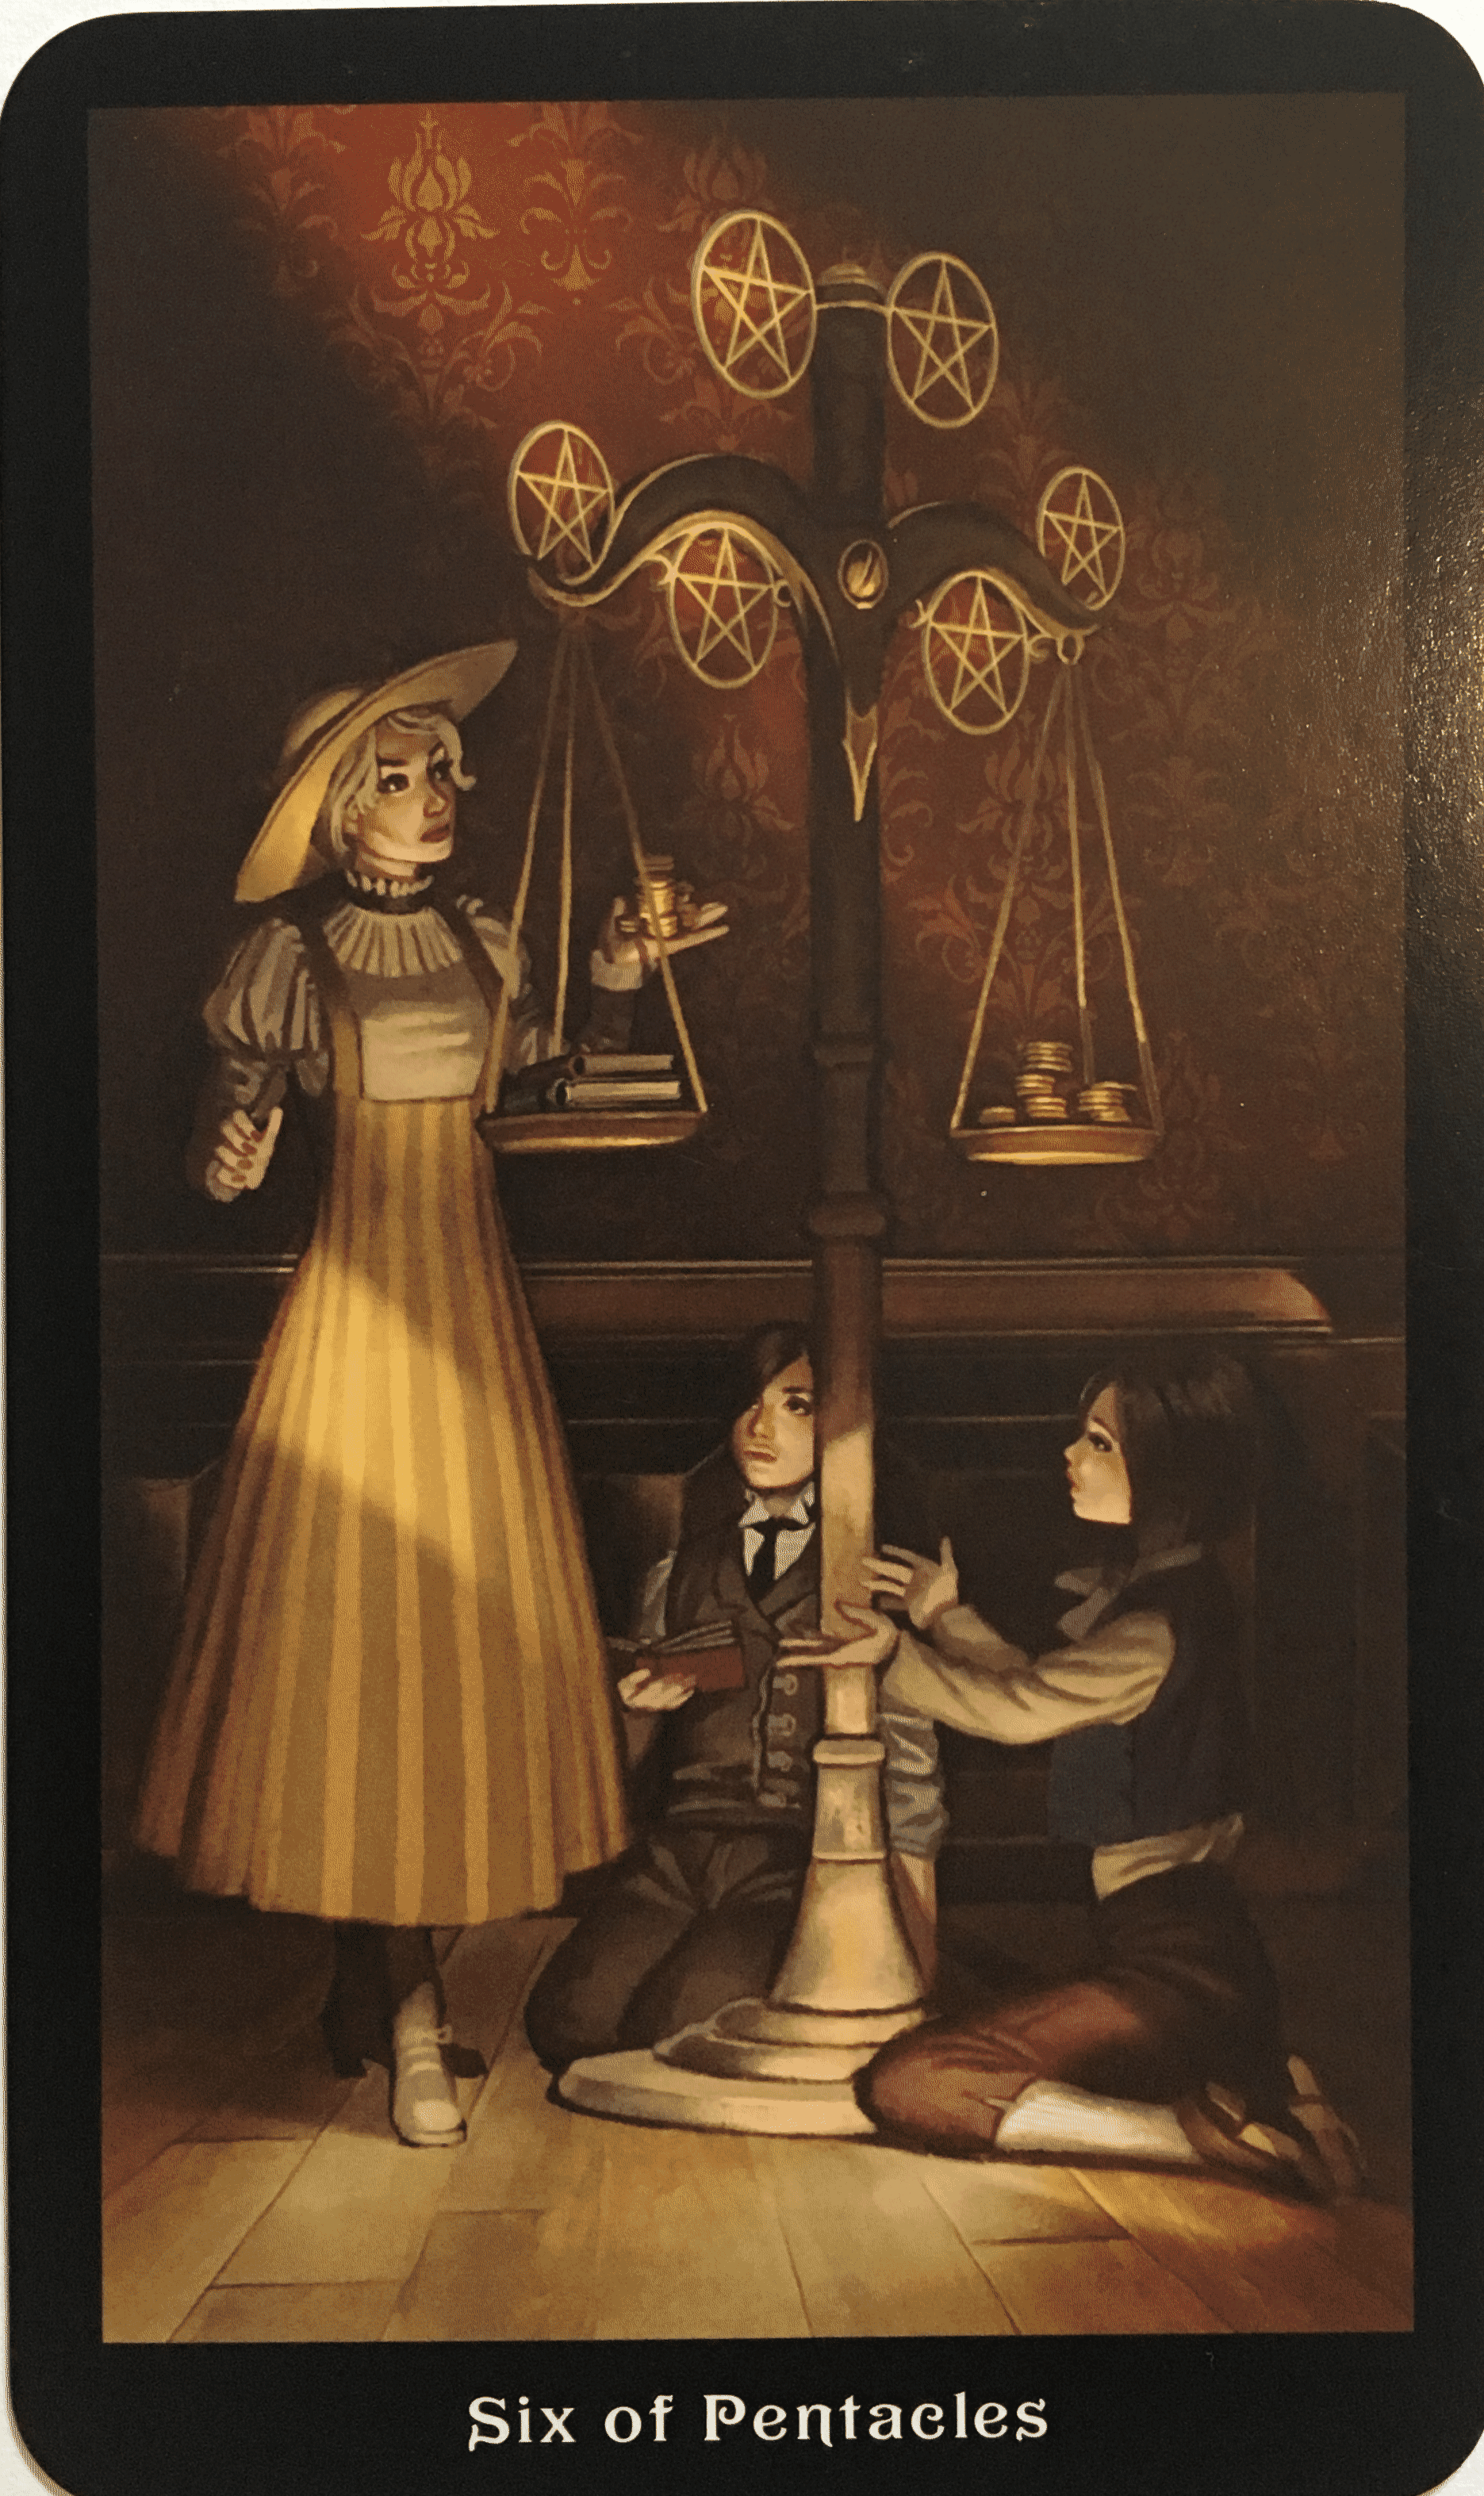 Tarotscope 04 March 2019 Intuitive Rene The six of pentacles shows a wealthy man dressed in a red robe, handing out coins to two beggars who kneel at his feet. tarotscope 04 march 2019 intuitive rene